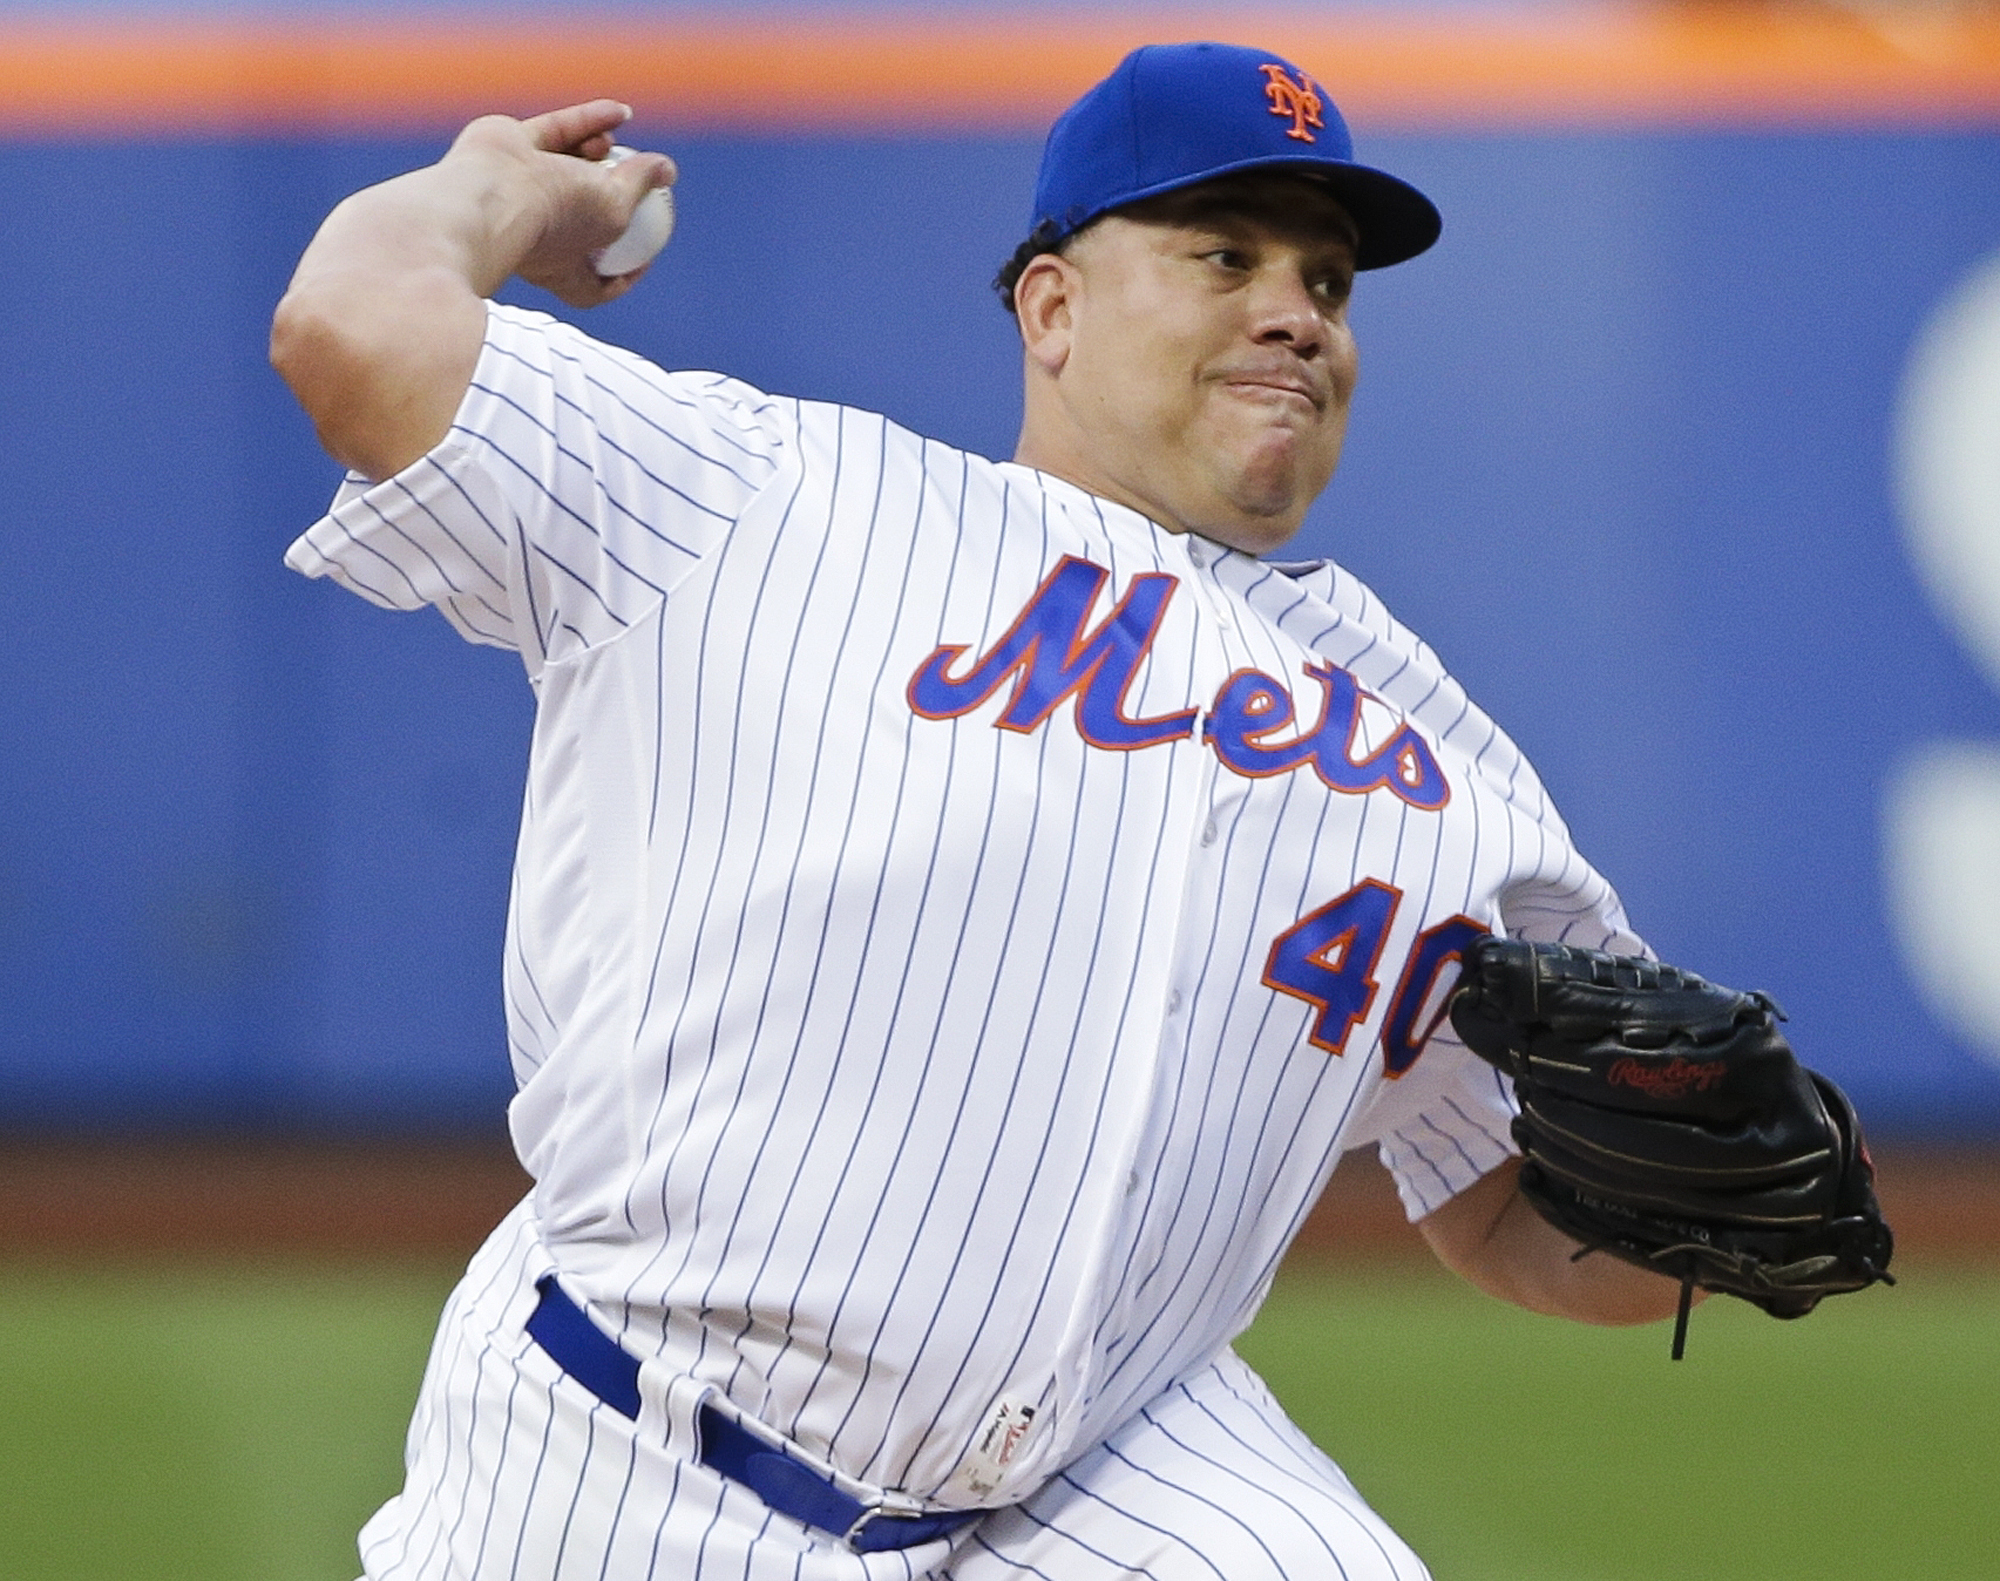 New York Mets' Bartolo Colon delivers a pitch during the first inning of a baseball game against the Pittsburgh Pirates, Thursday, June 16, 2016, in New York. (AP Photo/Frank Franklin II)